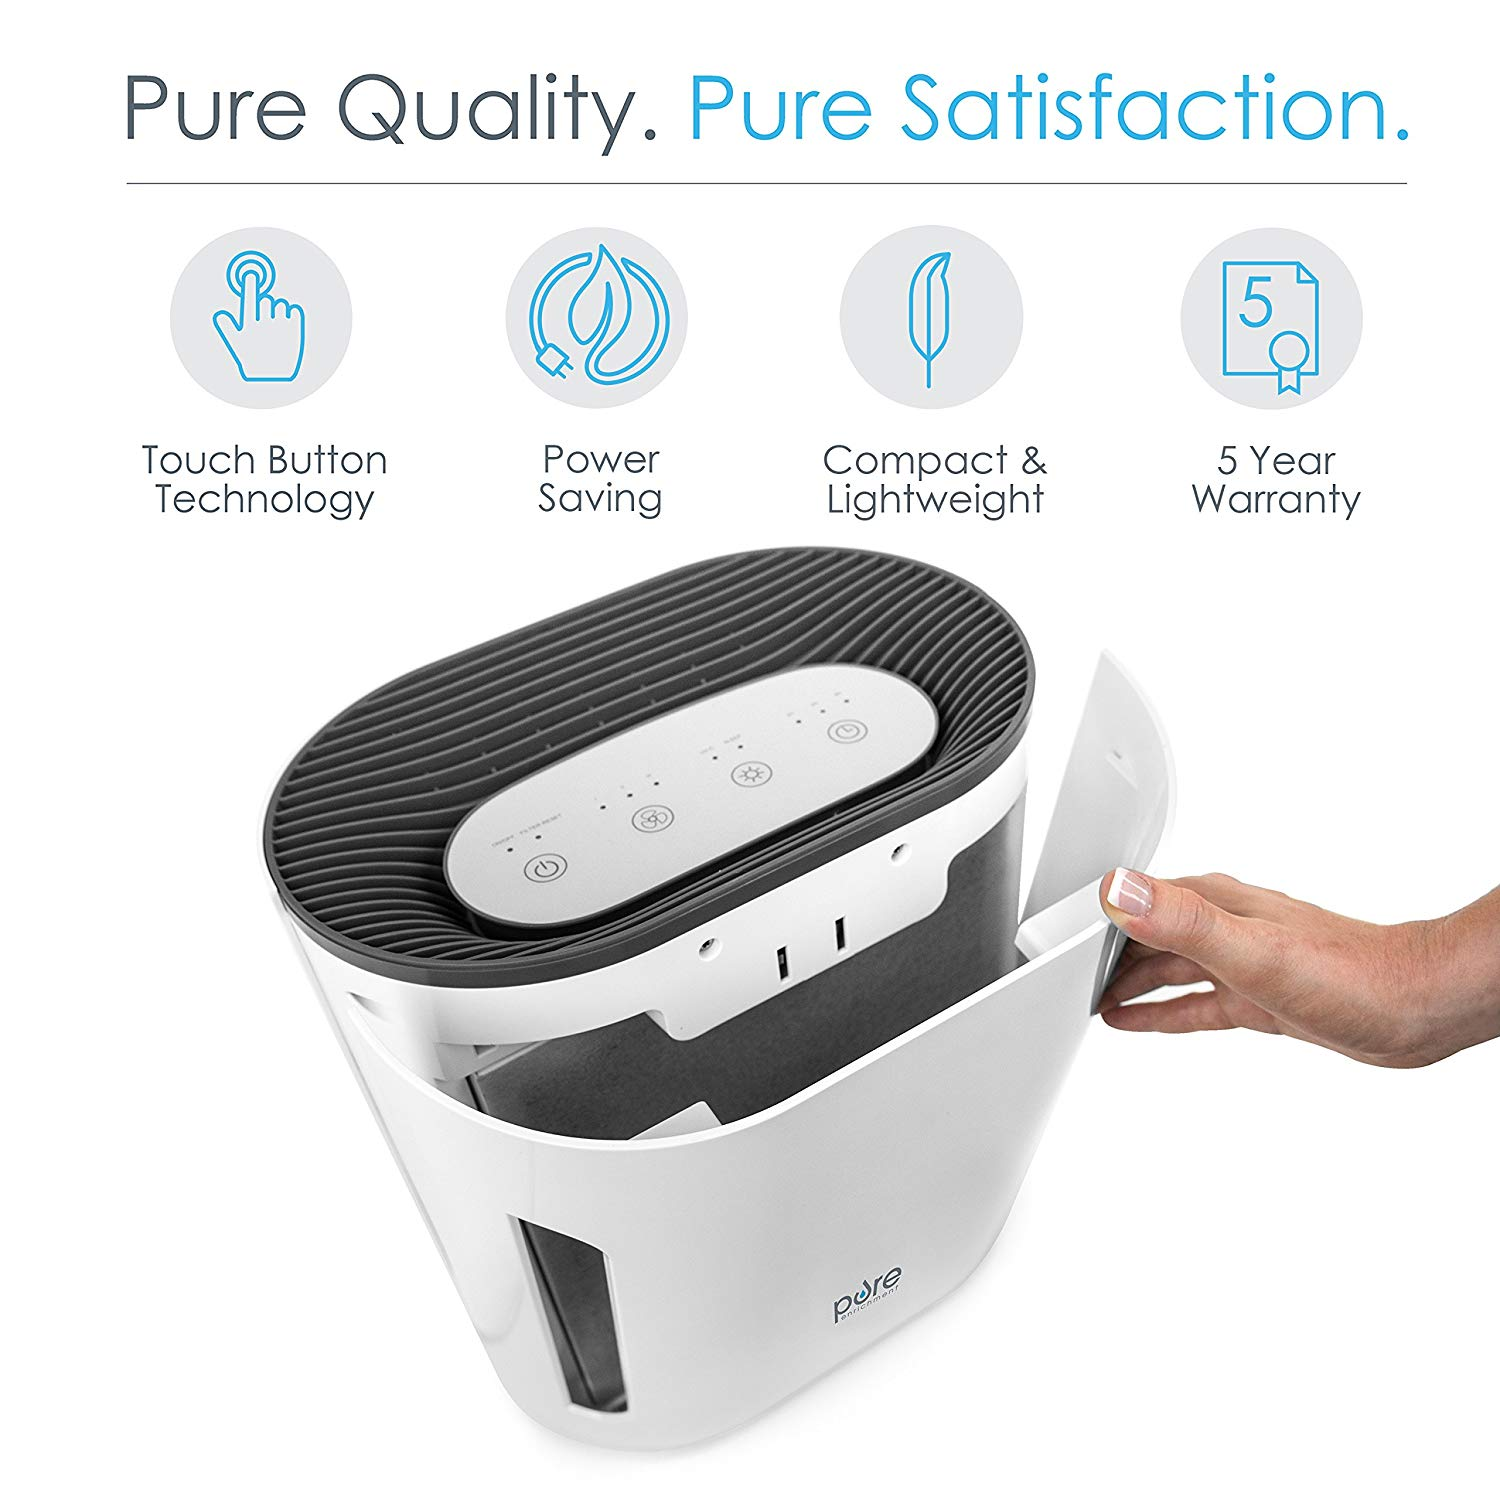 Pure Enrichment PureZone 3-in-1 True HEPA Air Purifier main